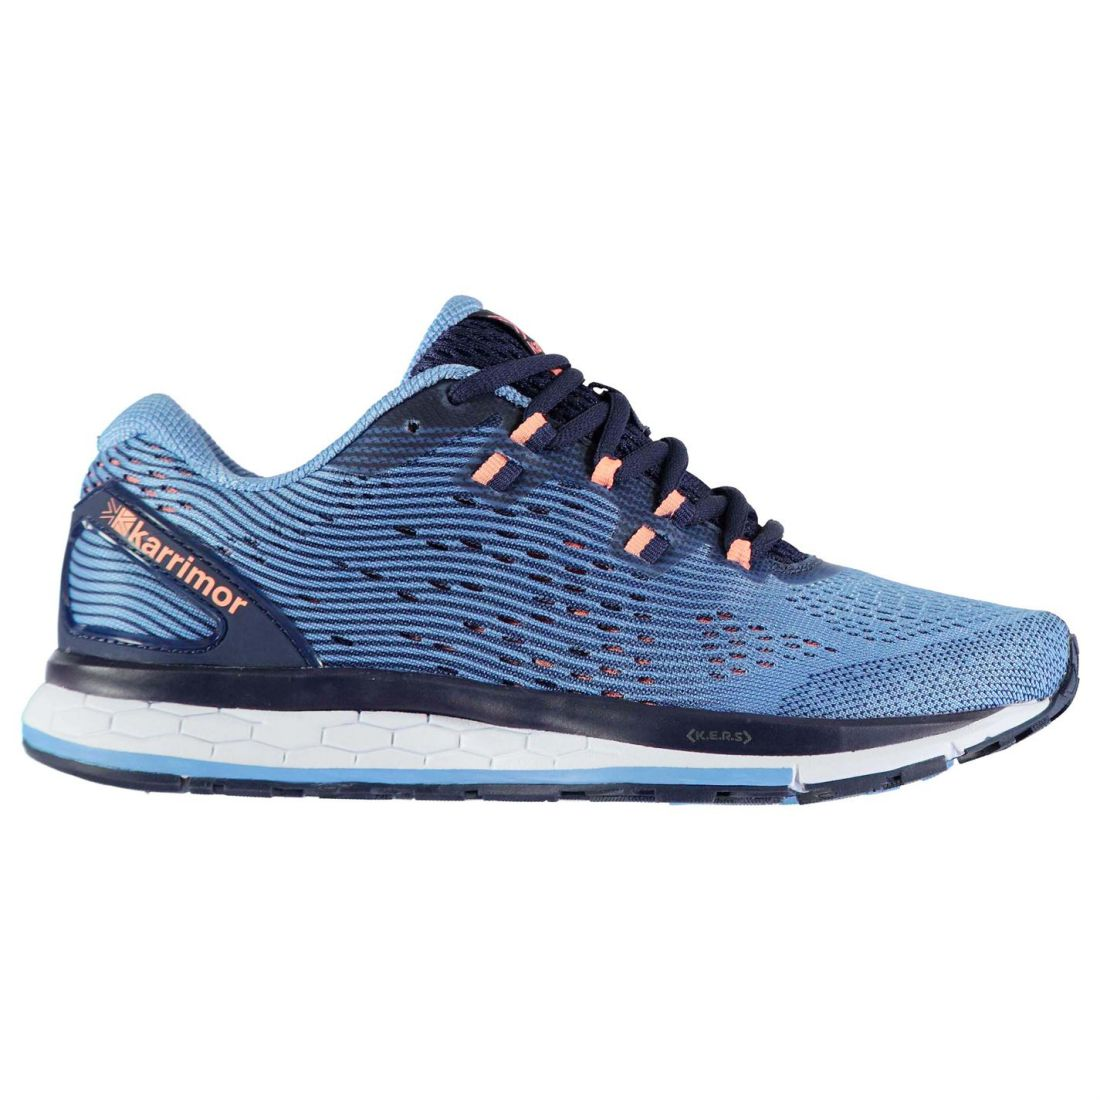 Karrimor Rapid Support Running shoes Mens Gents Road Laces Fastened Ventilated